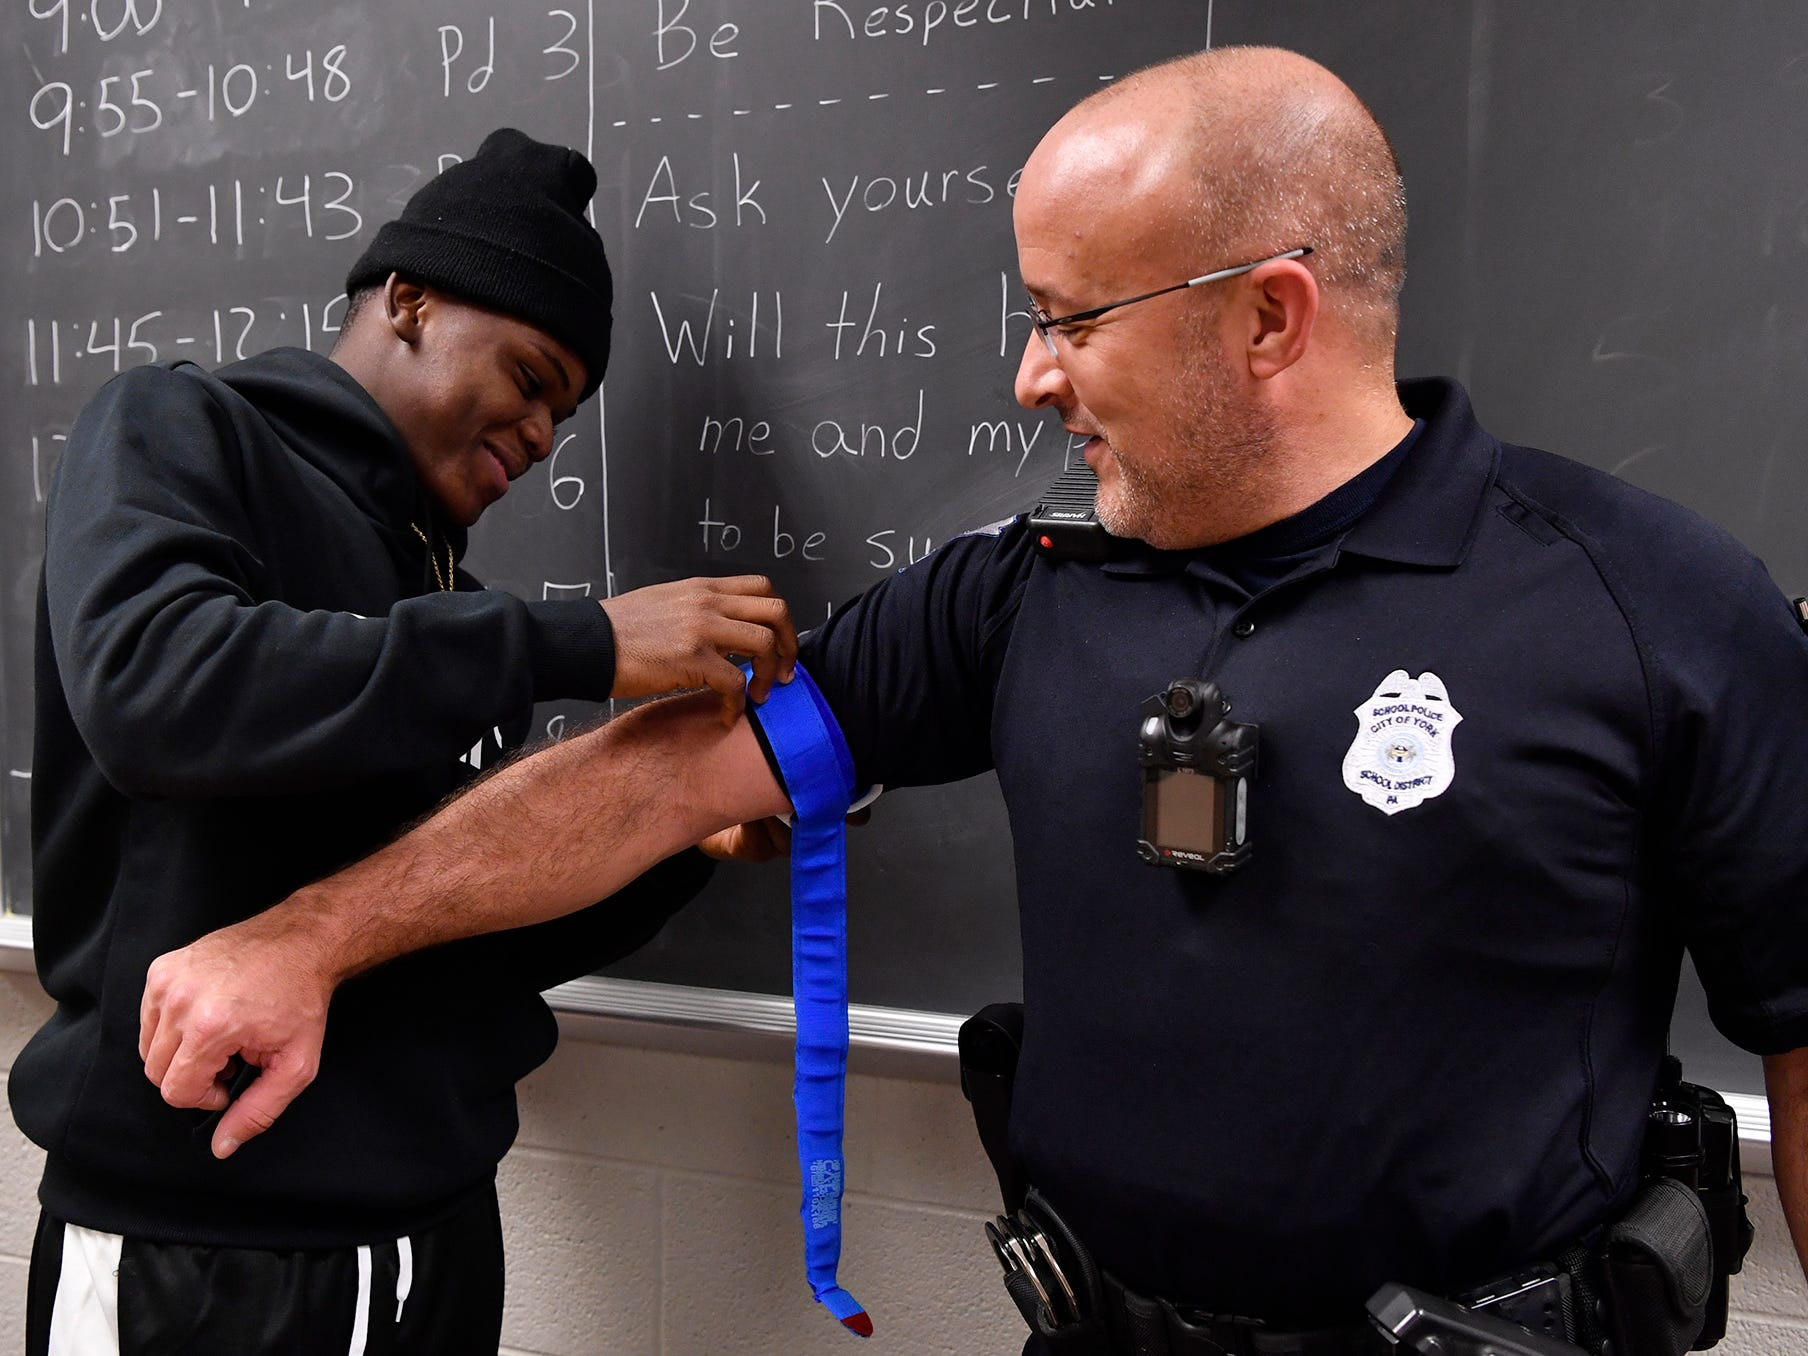 """William Penn Senior High School Public Safety and Emergency Services student Steve Prince, left, applies a tourniquet to School Police Officer Bryan Einsig during a """"stop the bleed"""" class, Tuesday, November 27, 2018. John A. Pavoncello photo"""